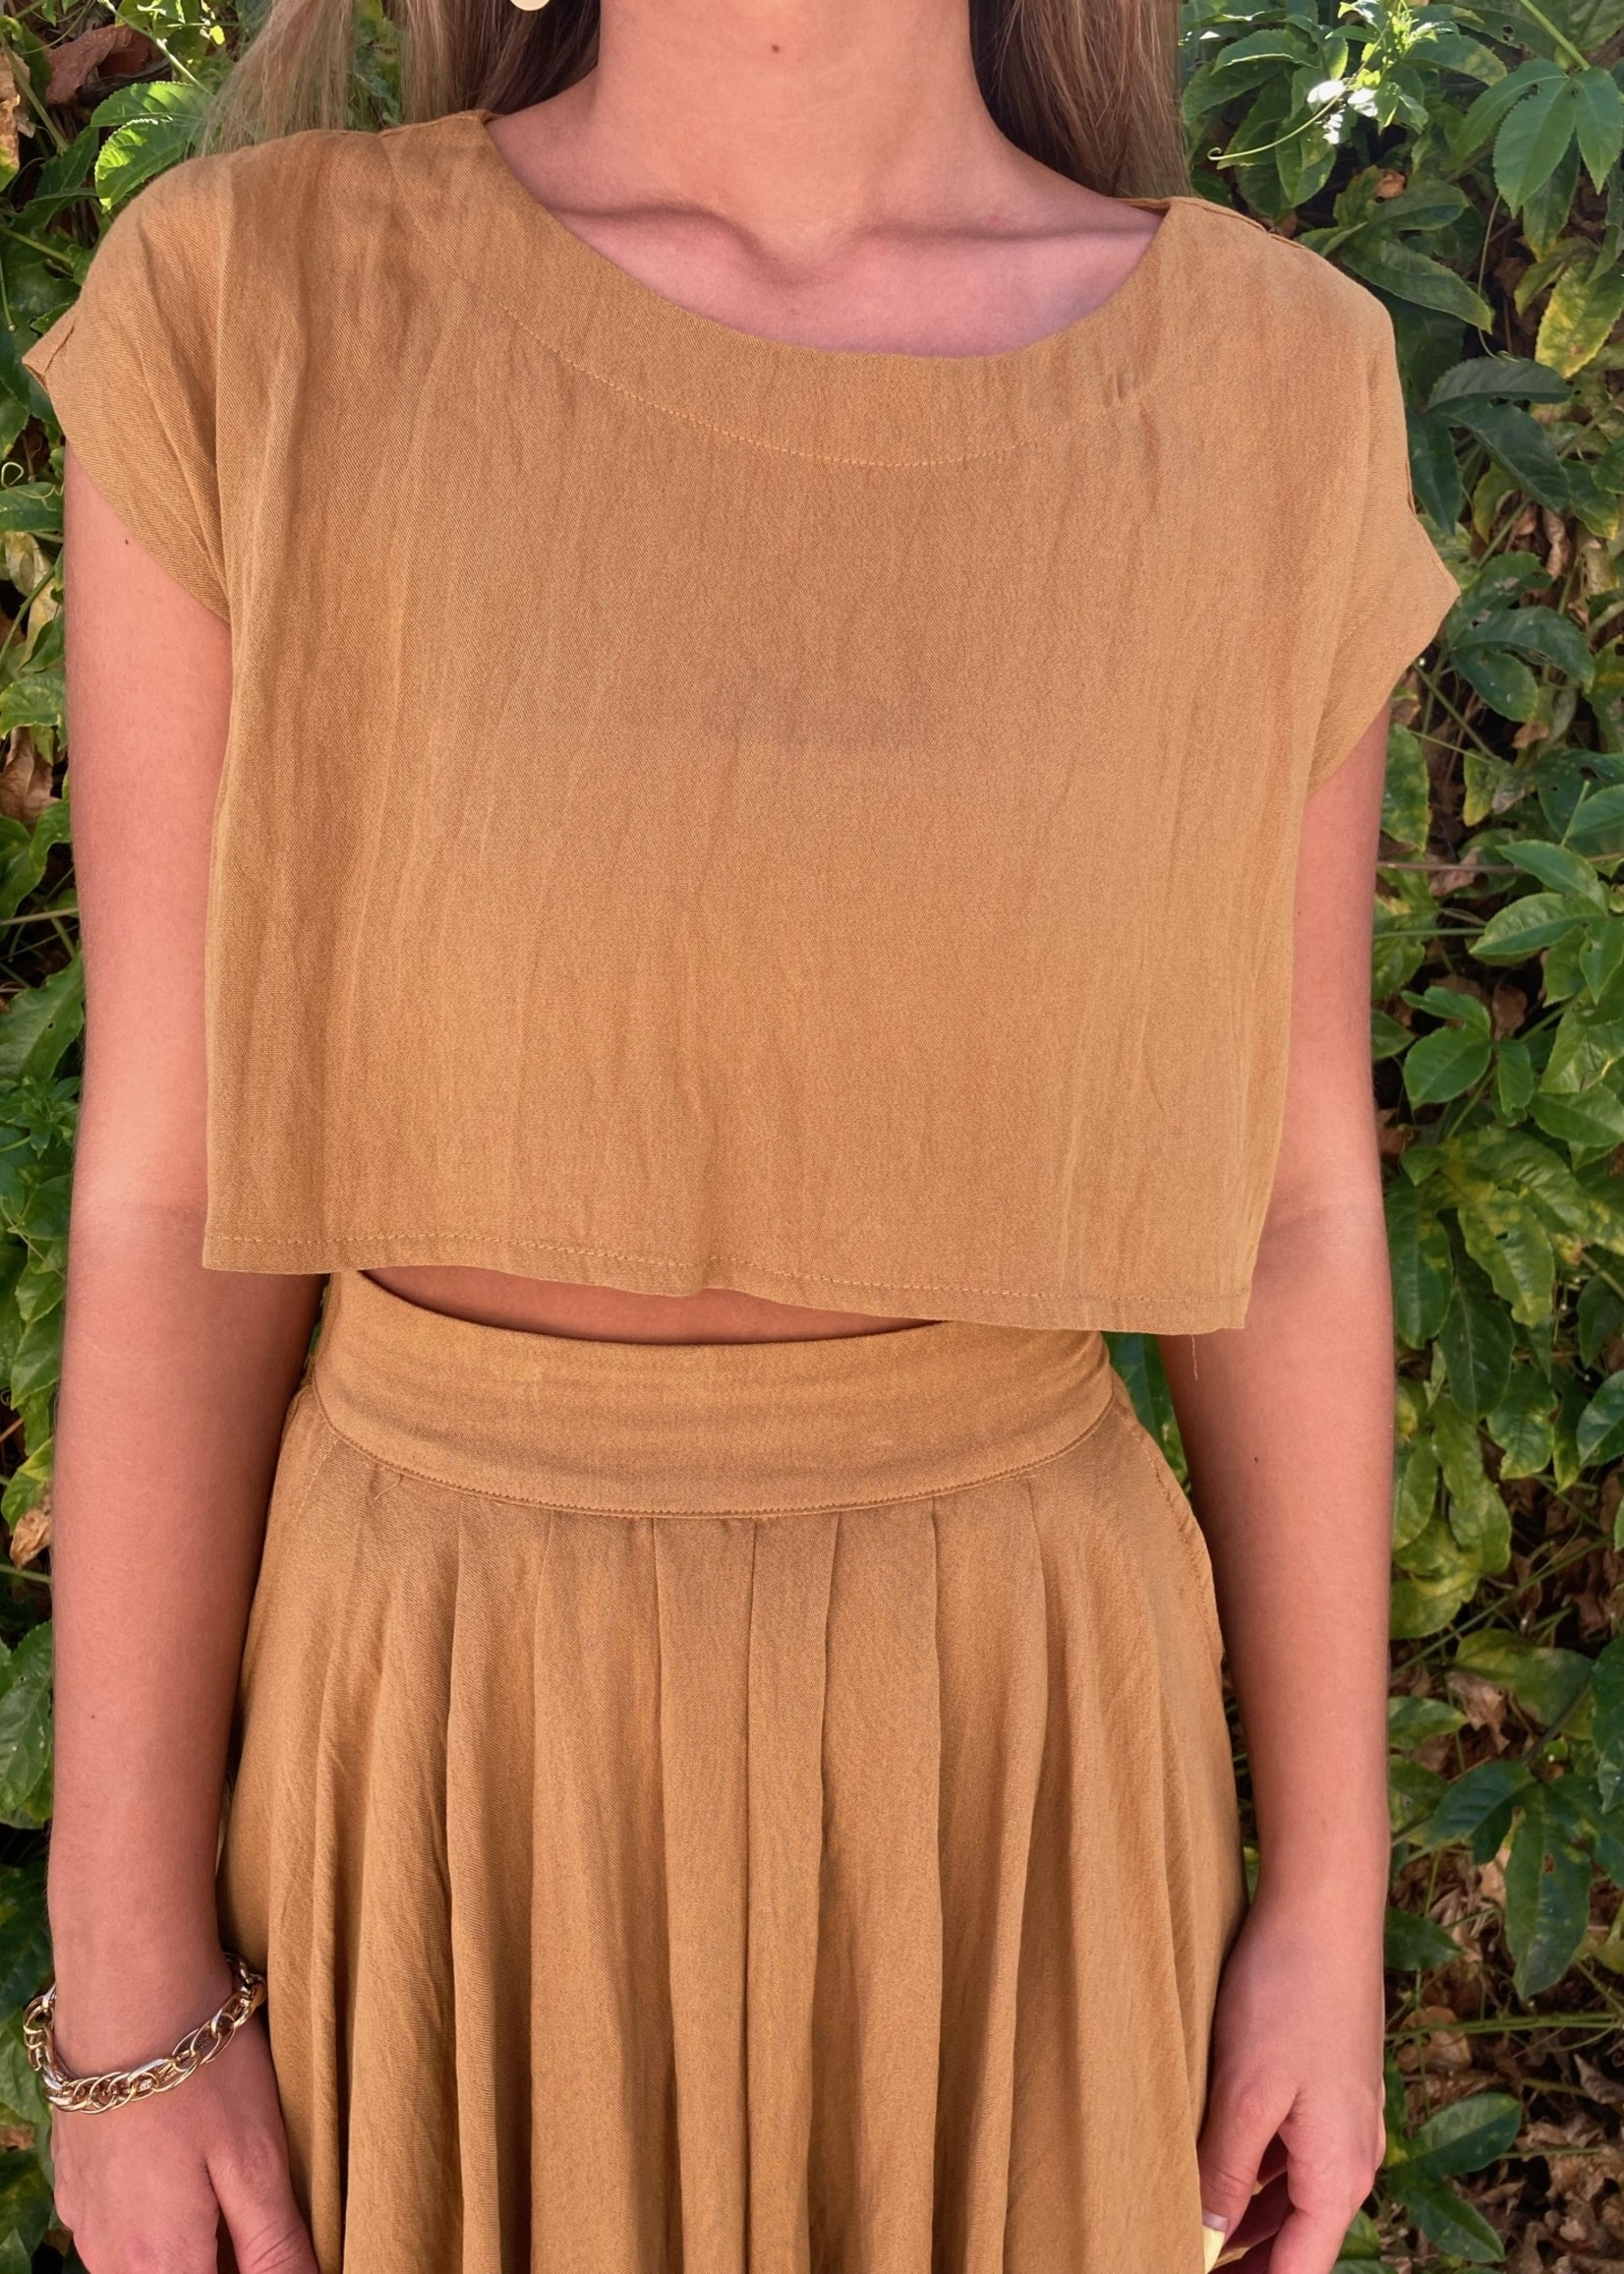 mable mable annie top